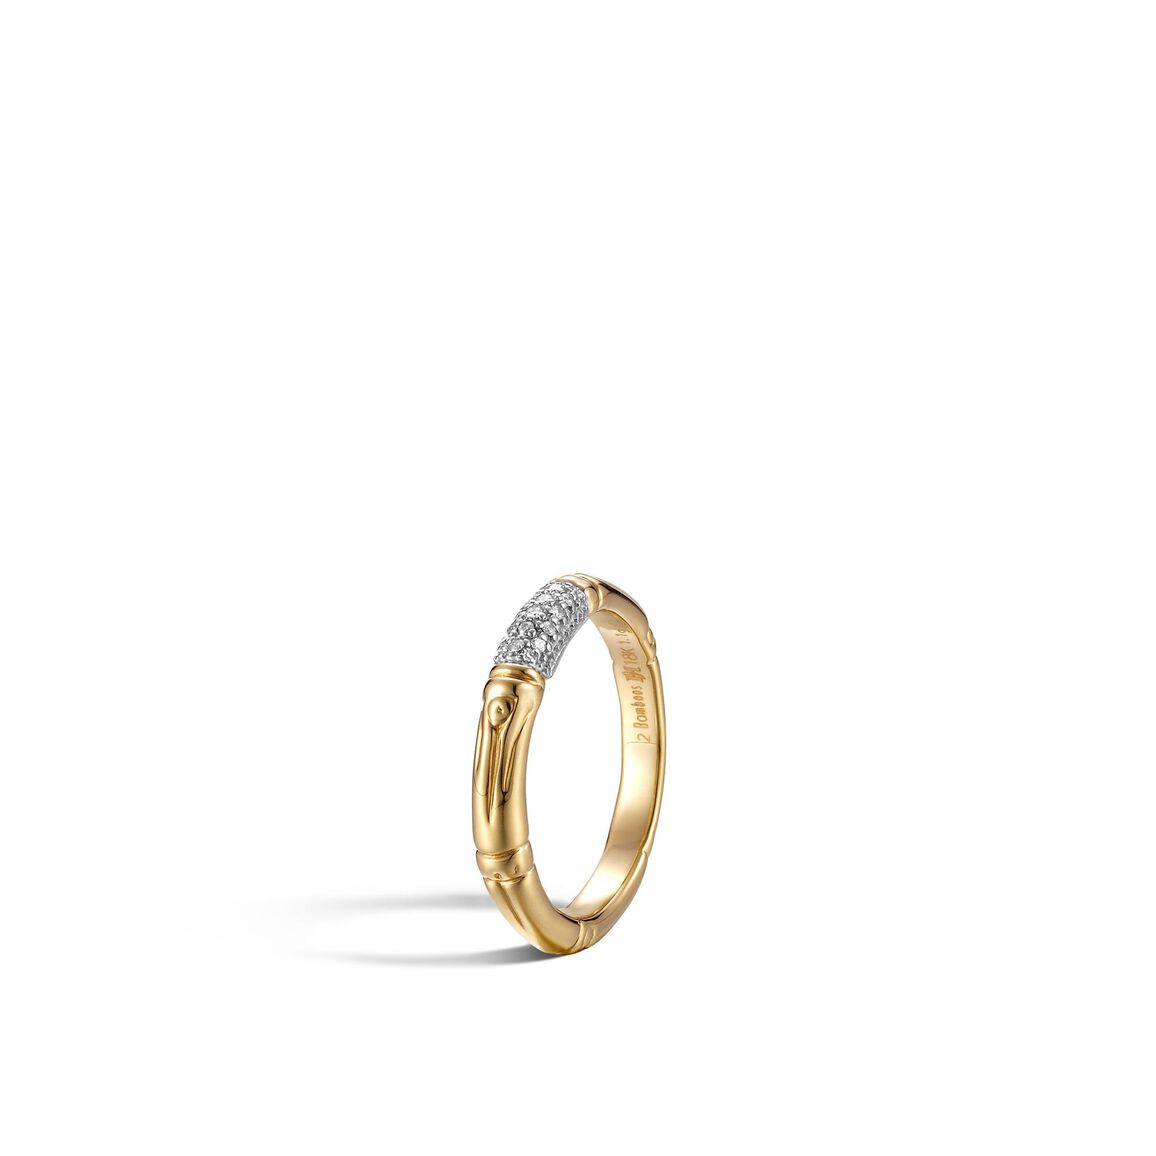 Bamboo 3.5MM Band Ring in 18K Gold with Diamonds